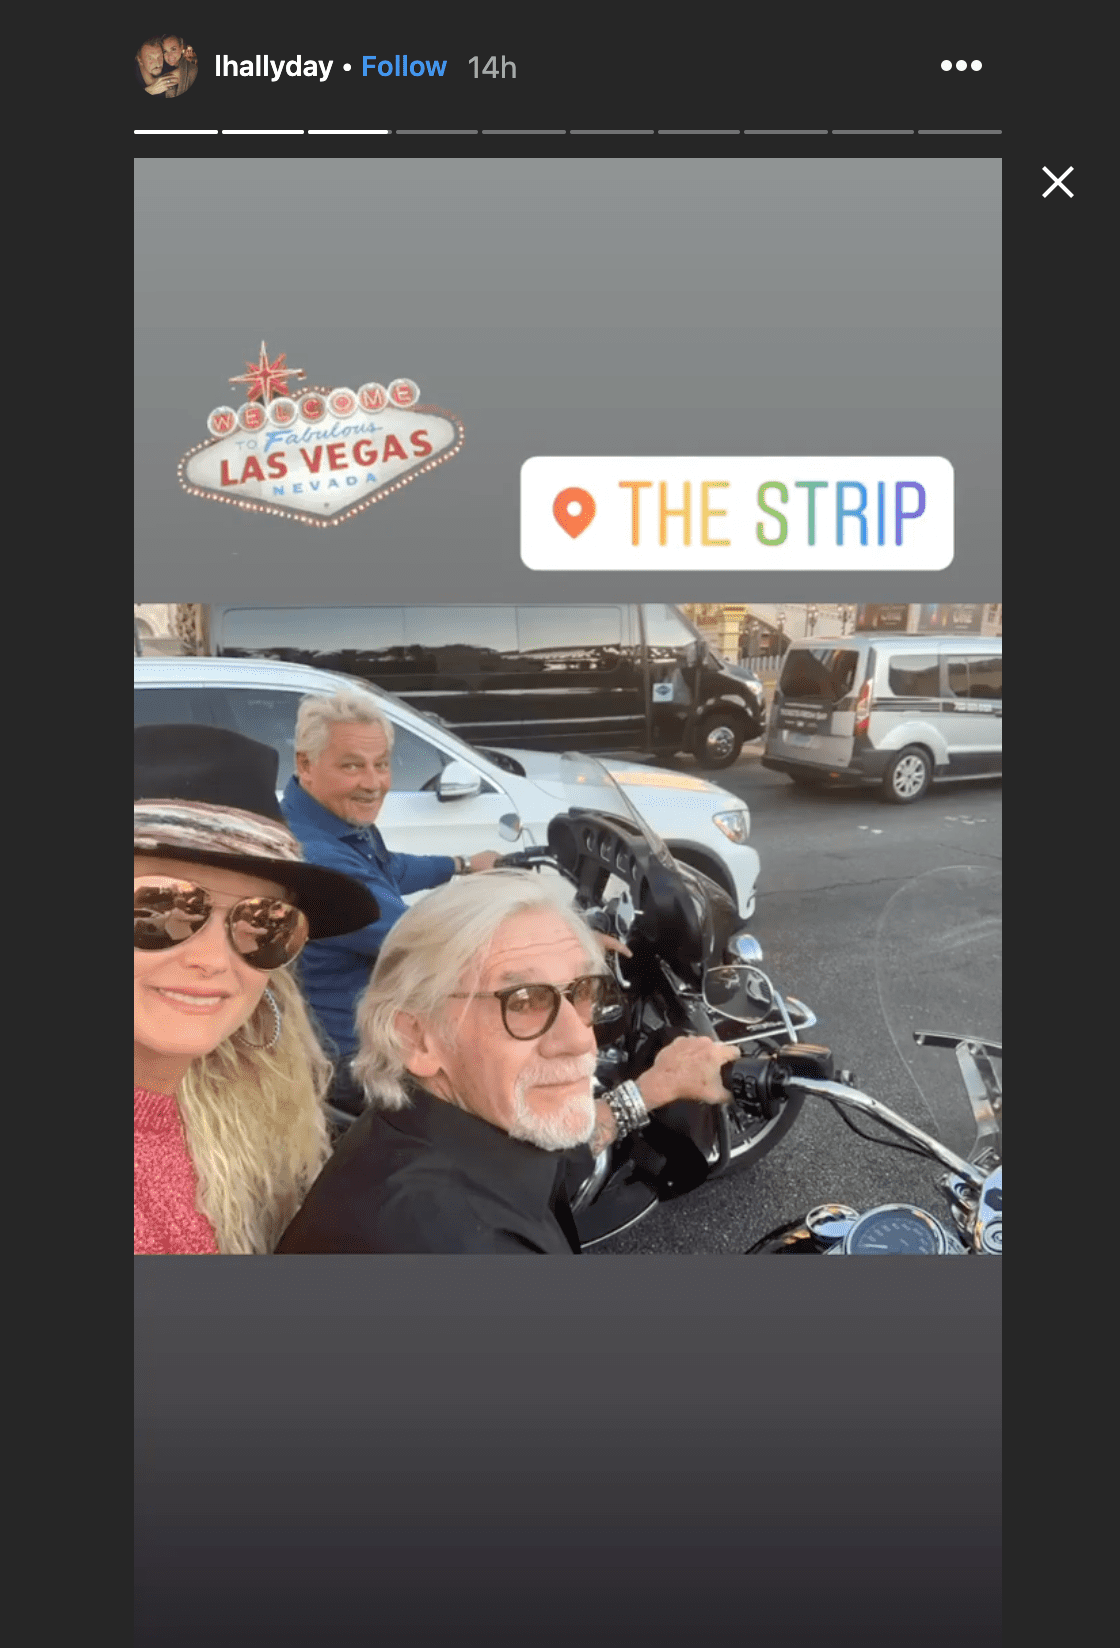 Laeticia hallyday avec les amis de johnny à Las Vegas | Photo : Instagram/lhallyday